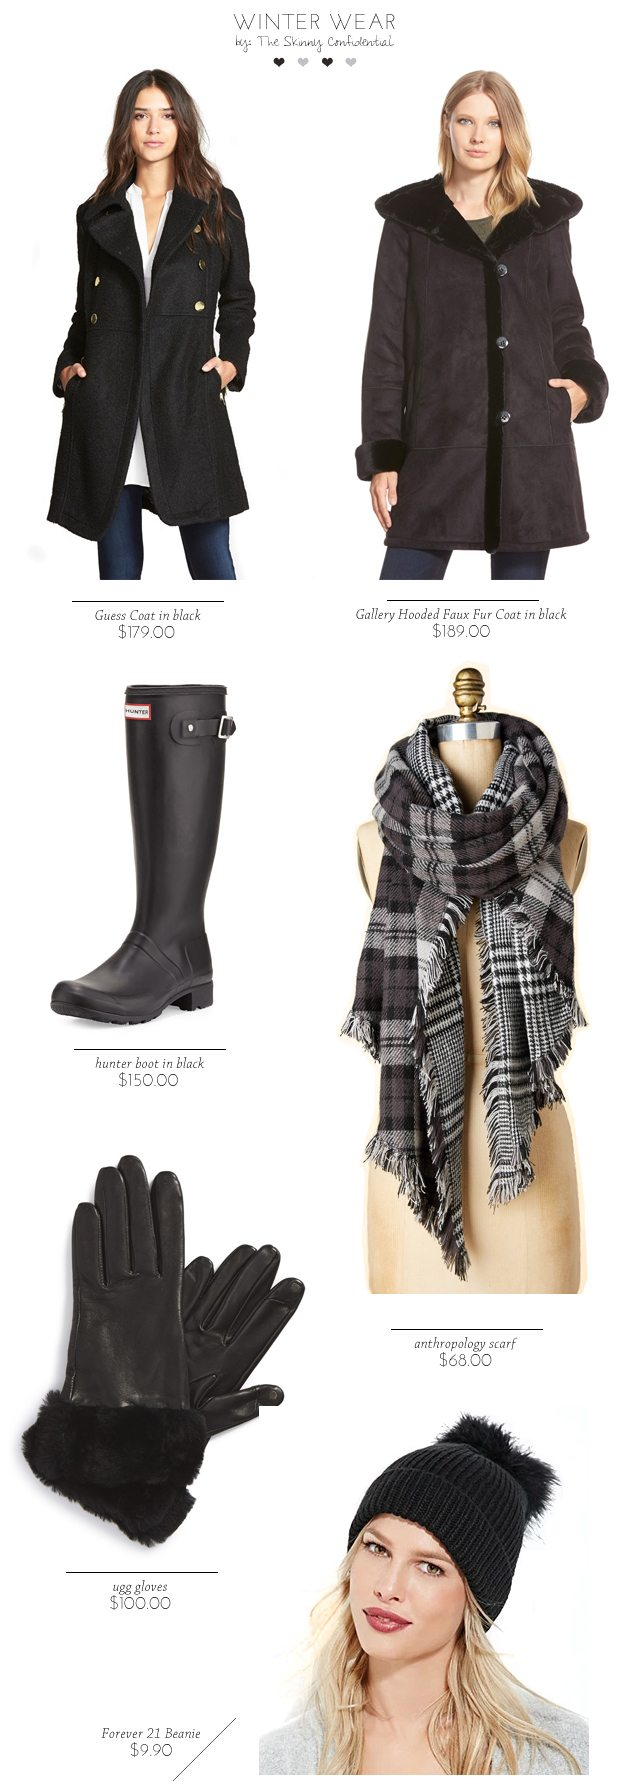 Winter clothing   by The Skinny Confidential